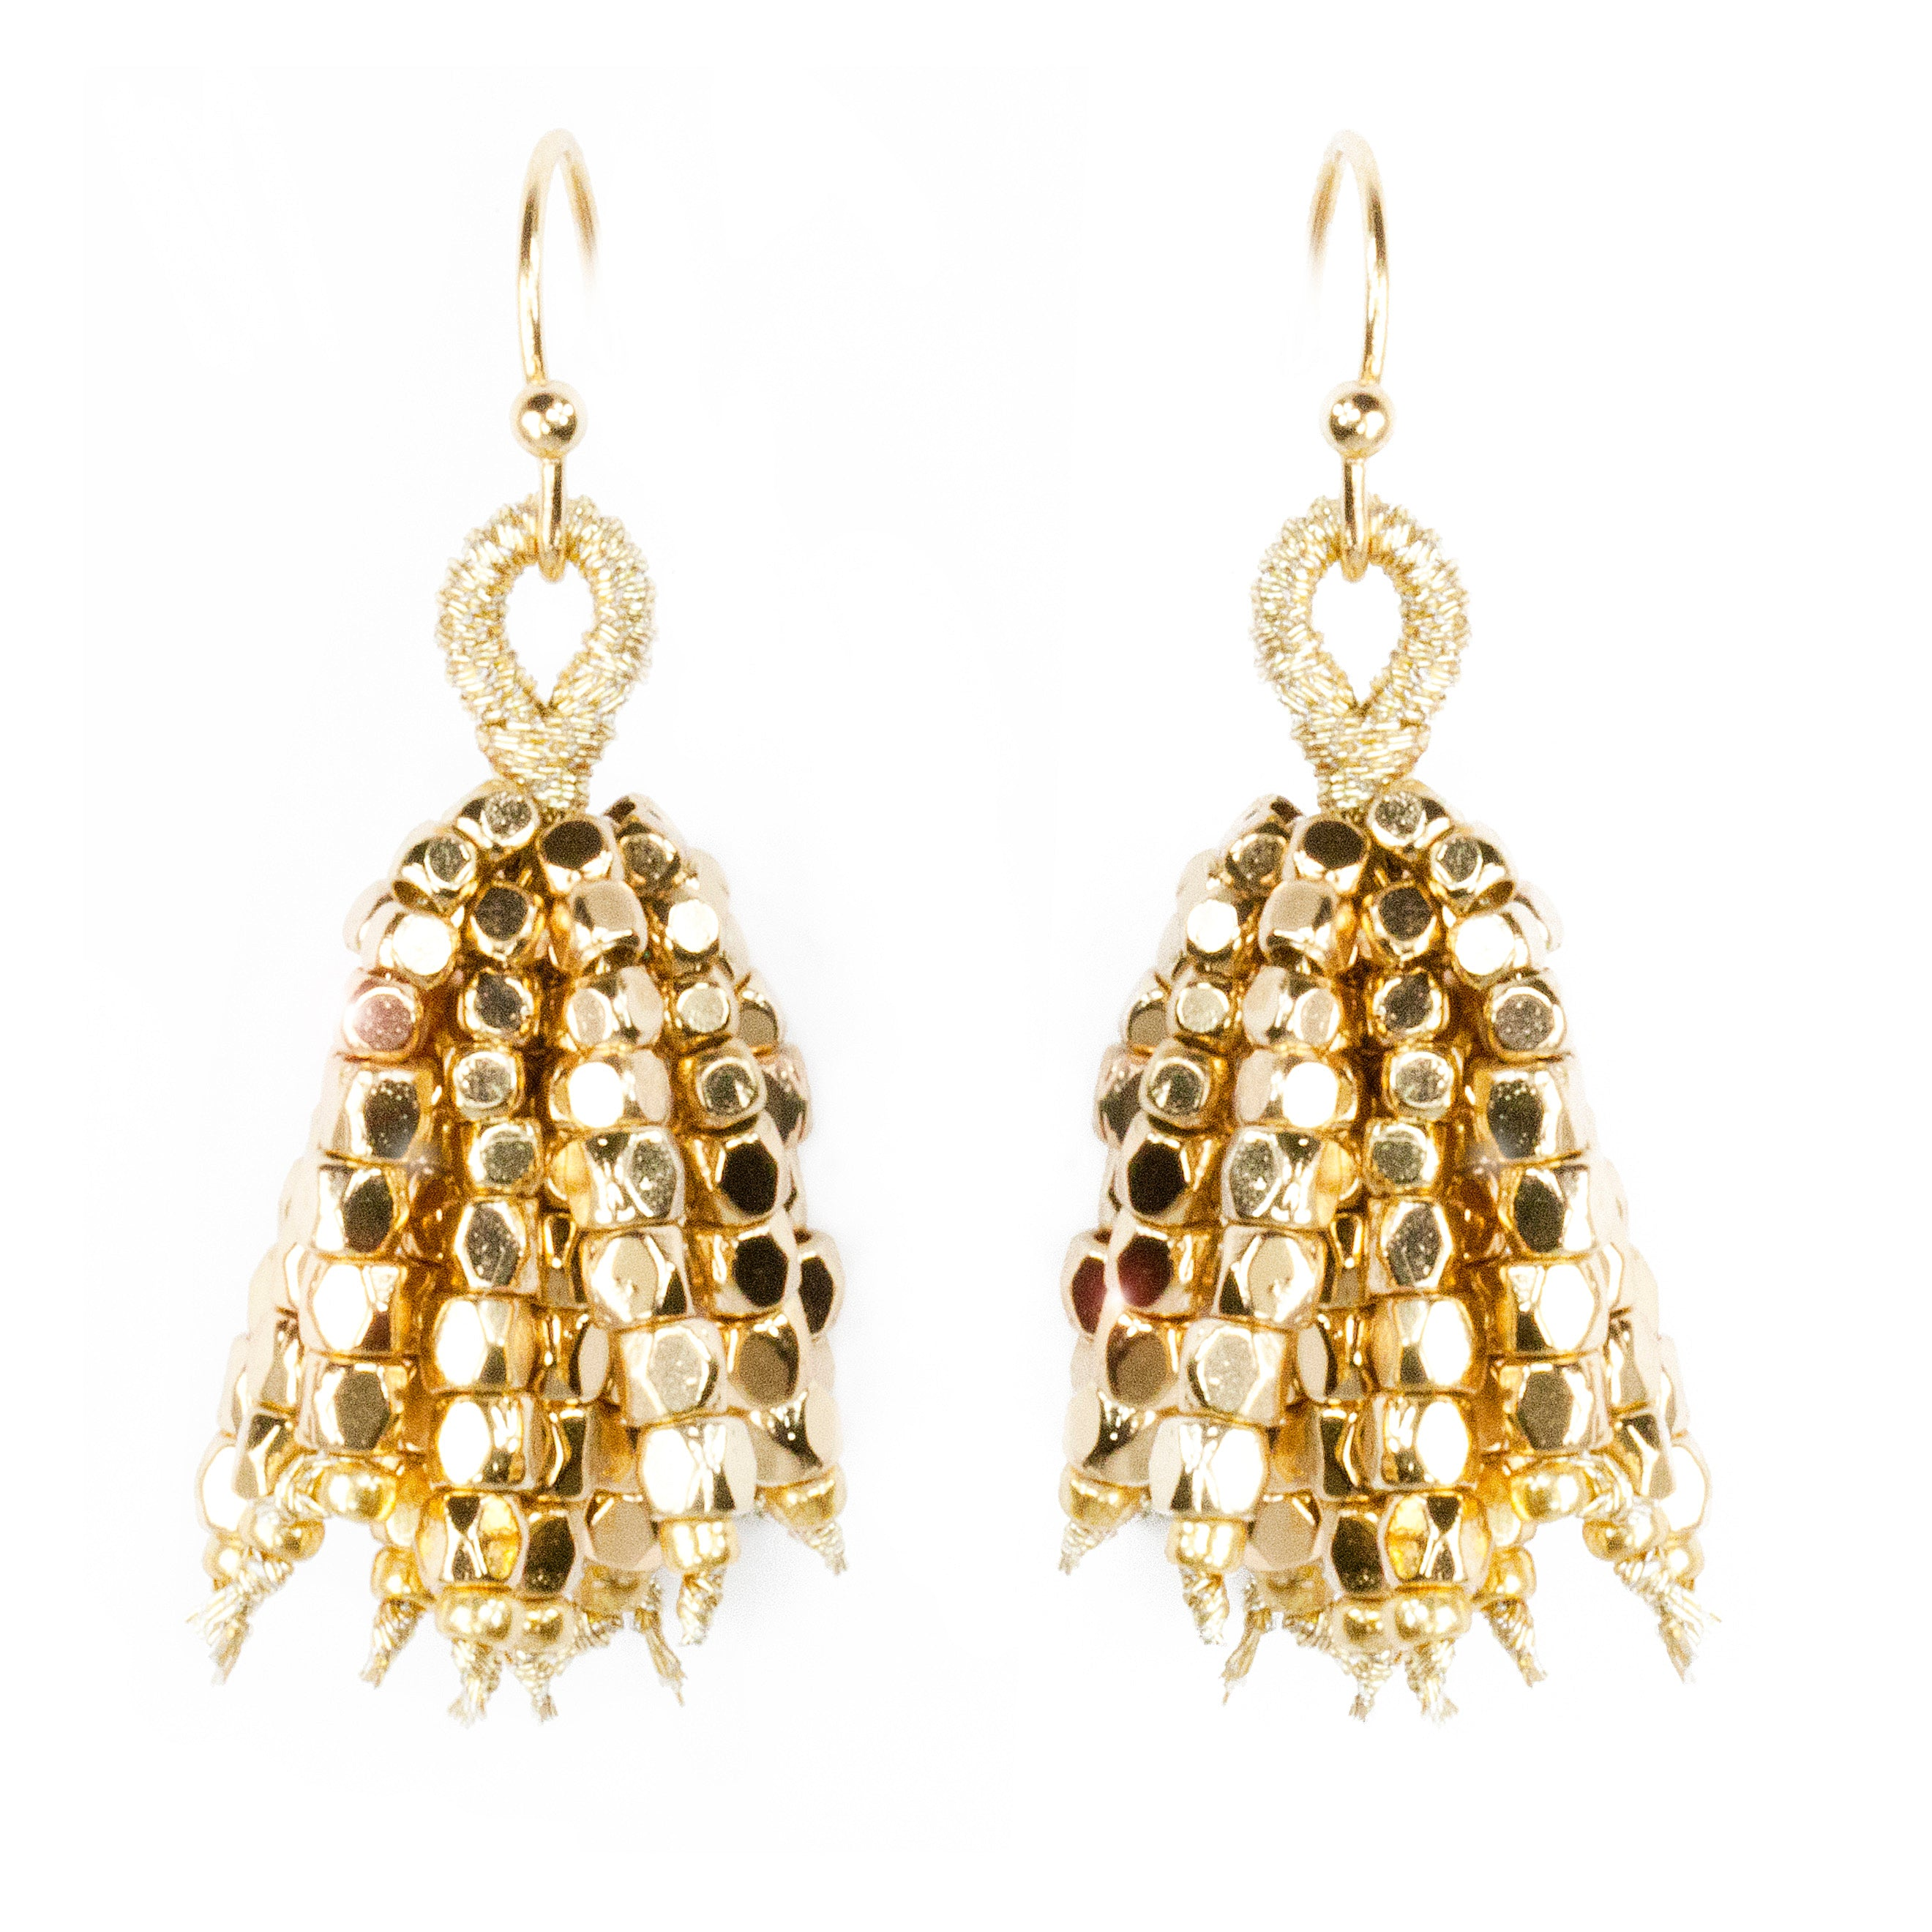 claire earrings fringe crystal us s drop